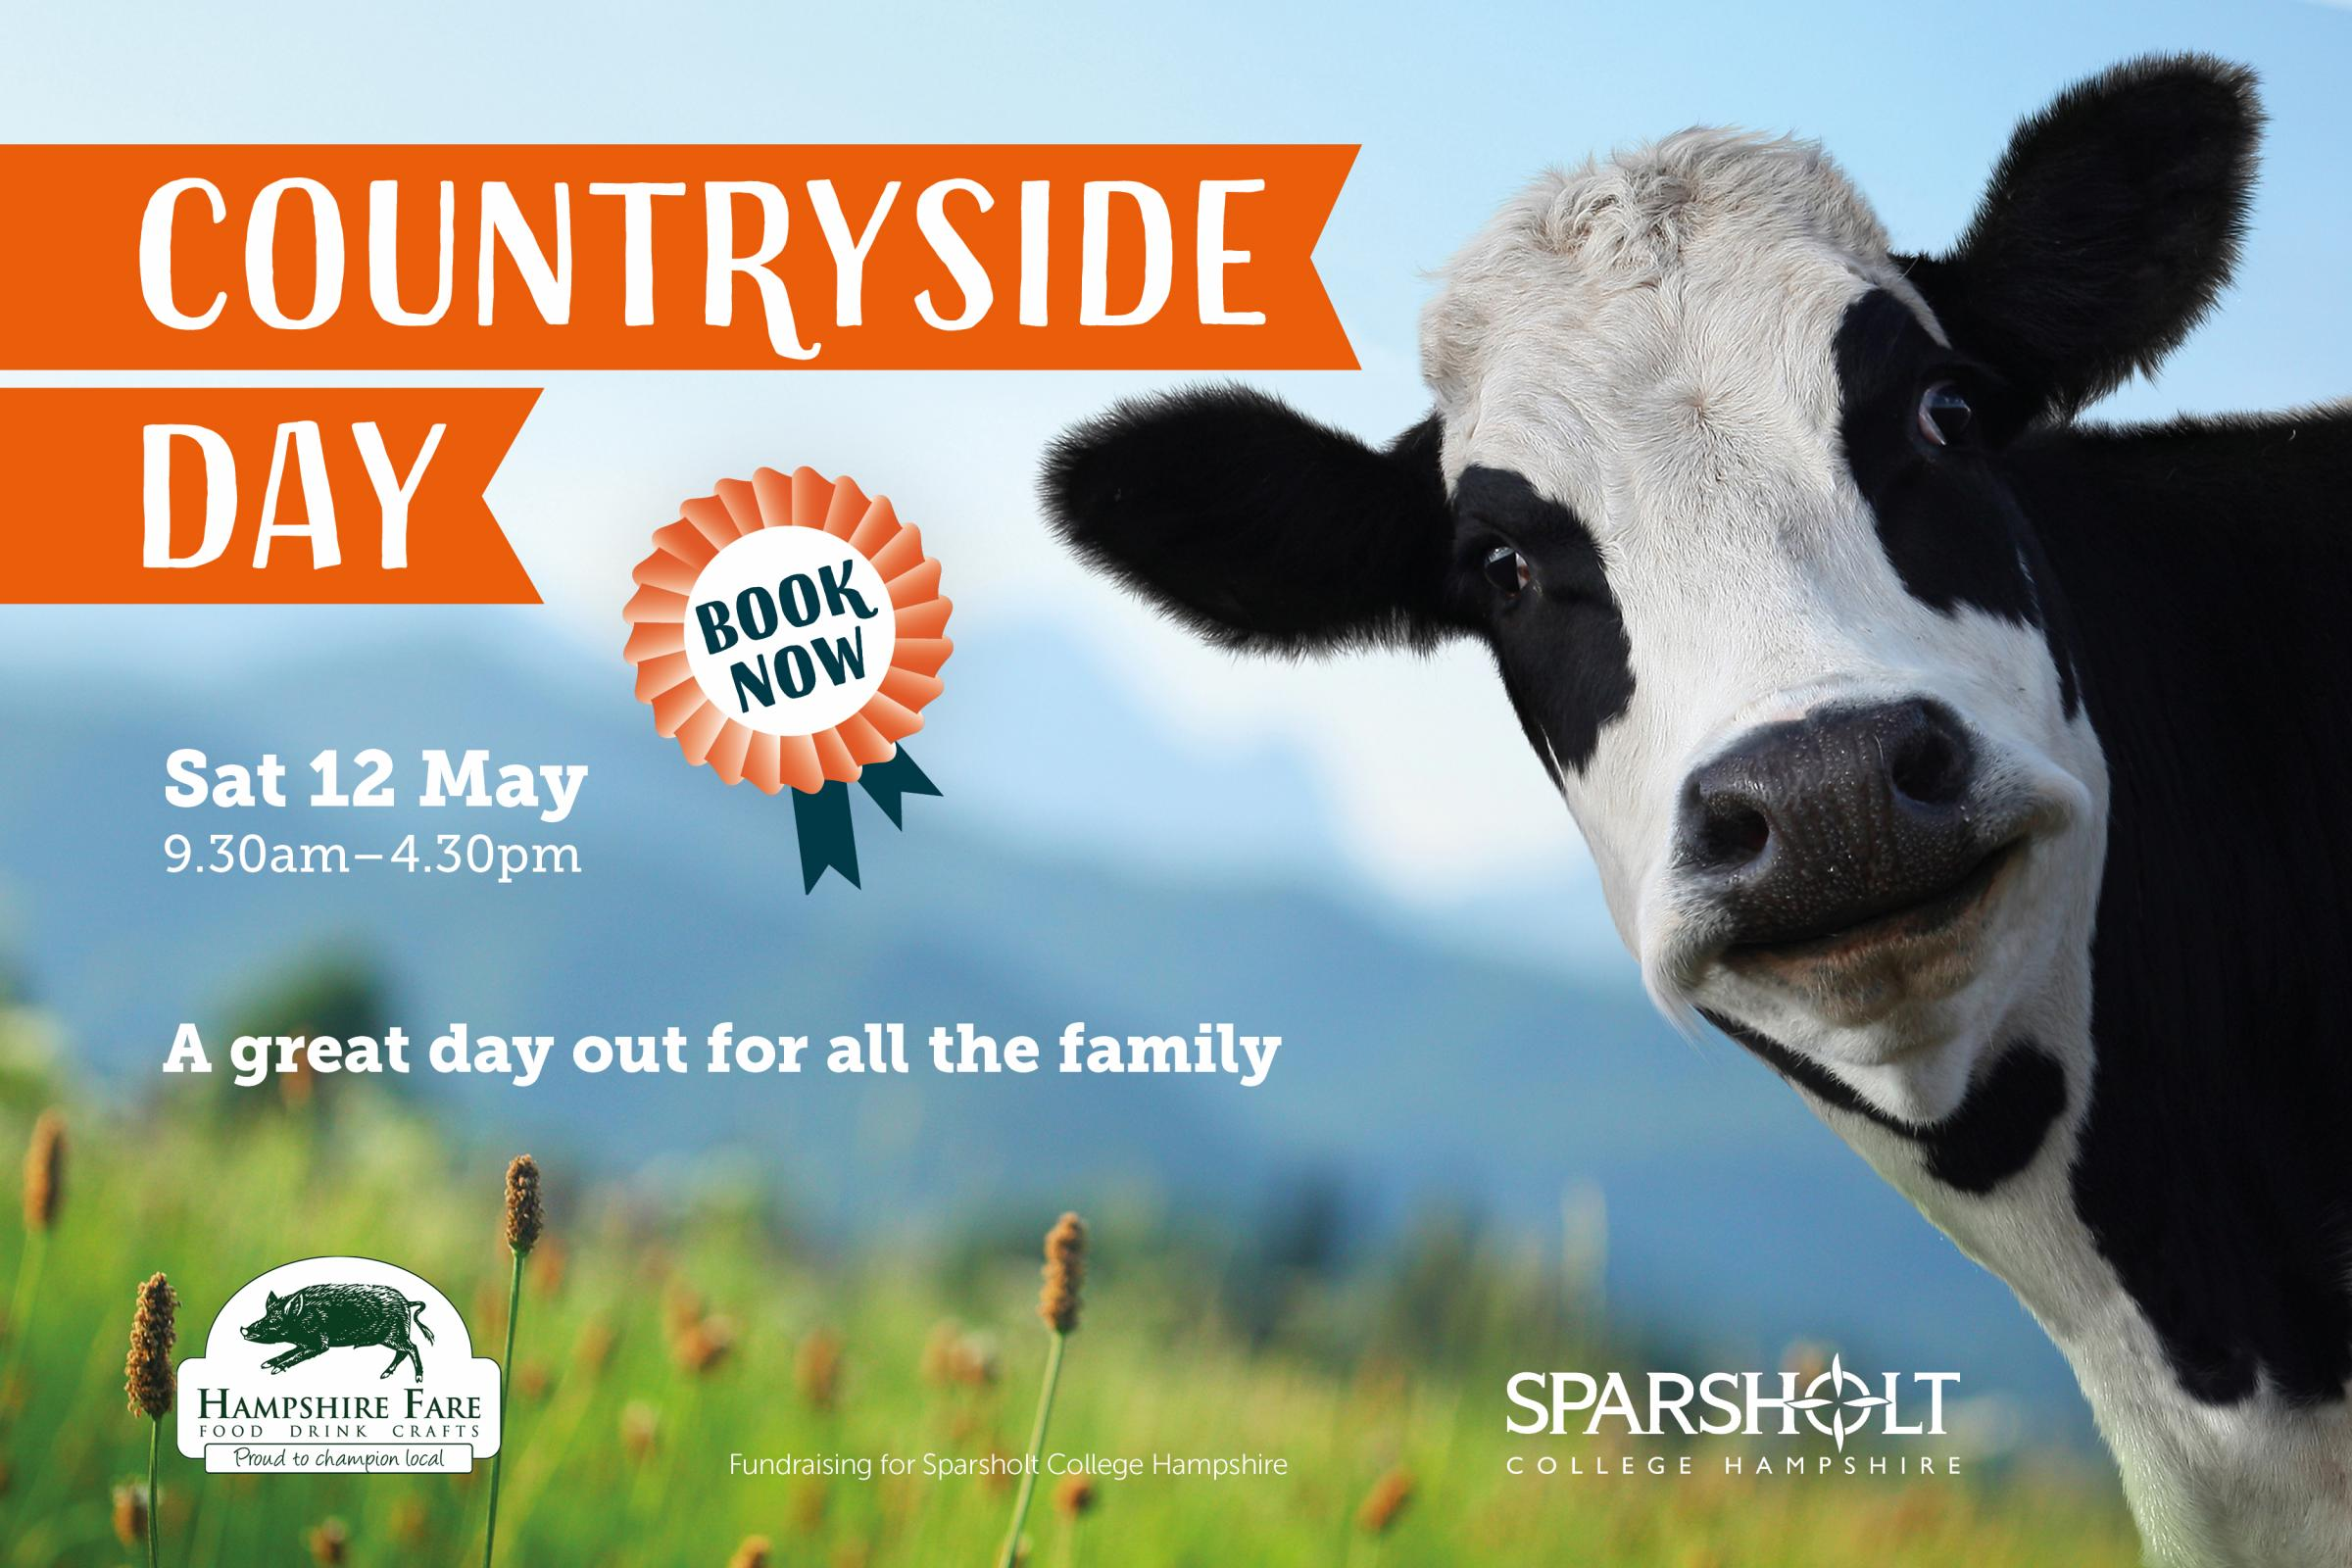 Countryside Day – Sparsholt College Hampshire